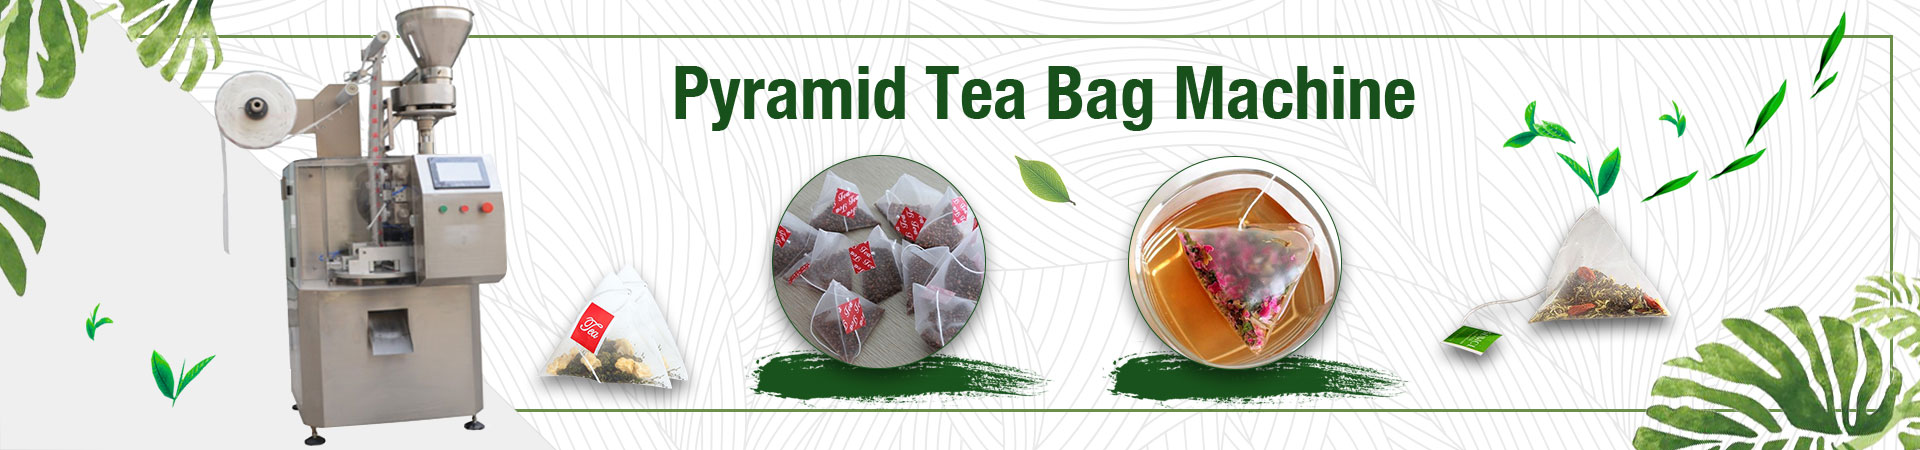 Pyramid tea bag machine